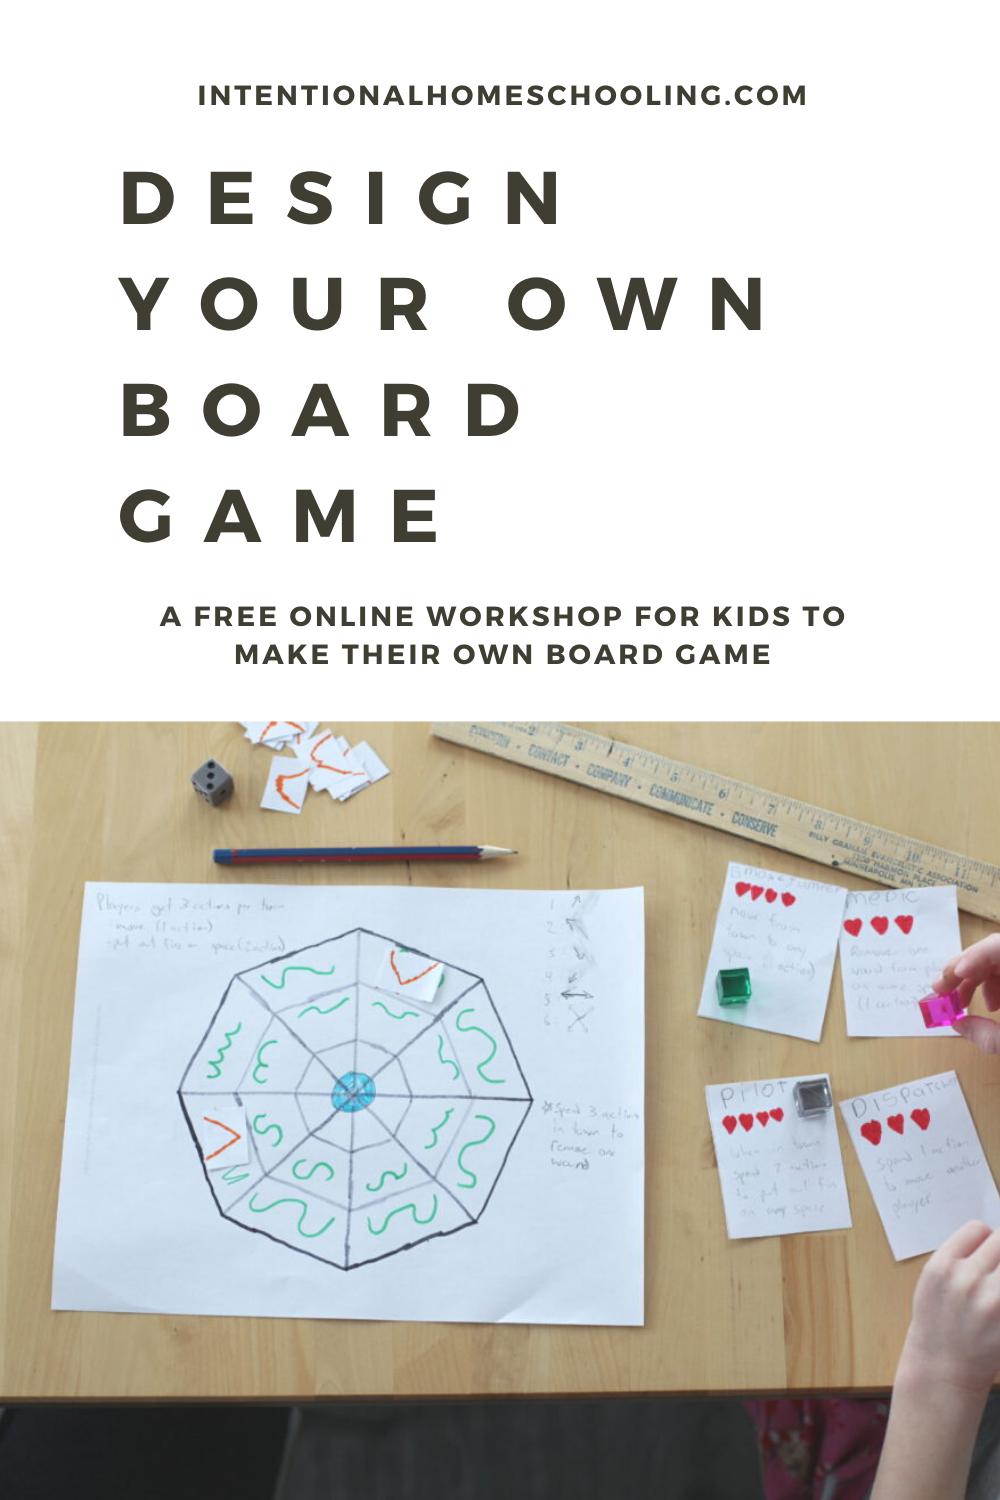 Design Your Own Board Game - free workshop